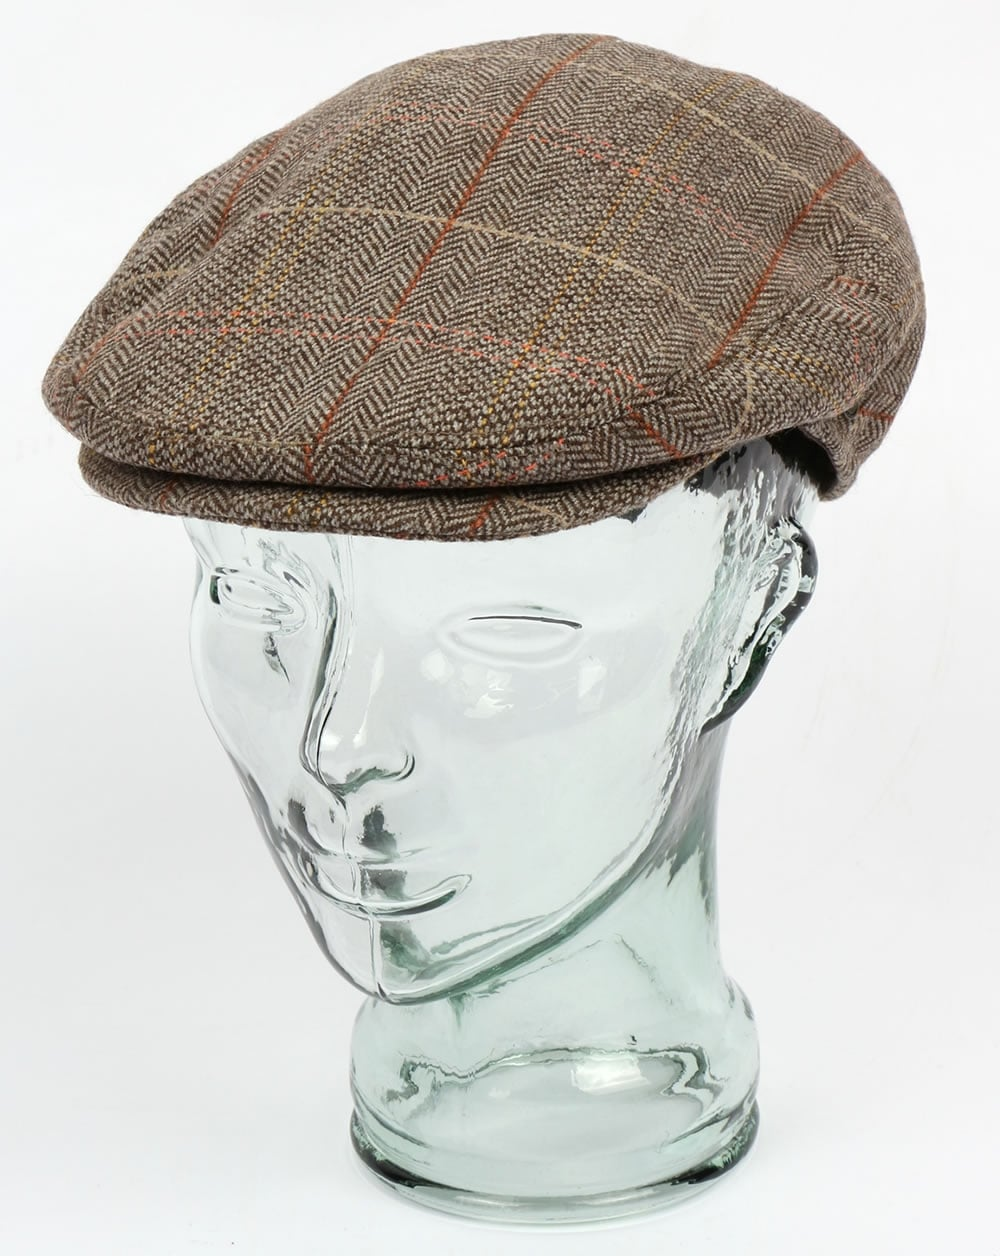 Tweed Flat Cap Brown Grey Peaky Blinders 80s Casual Classics